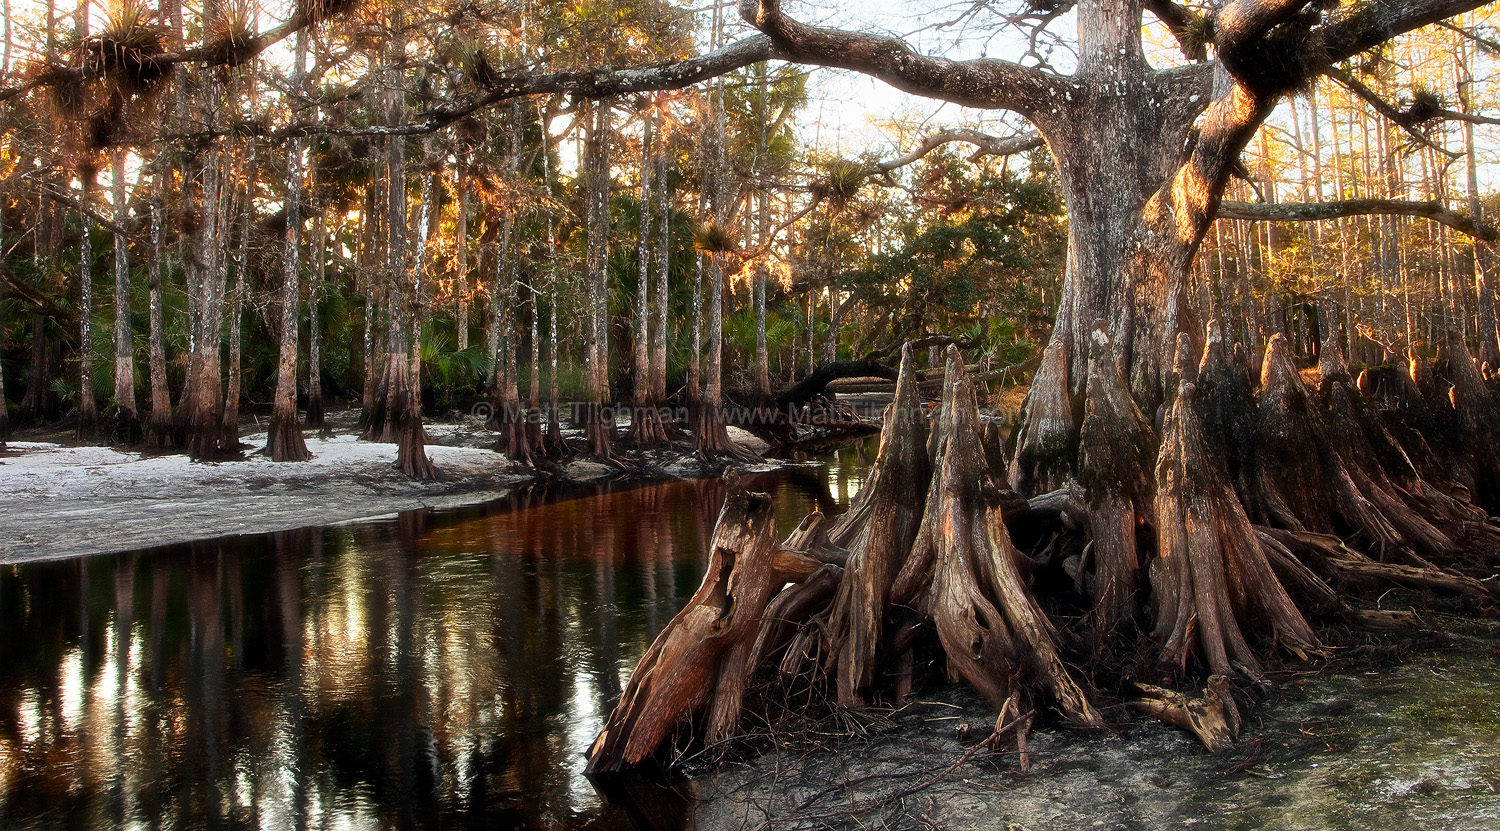 Fine art stock nature photograph, from Fisheating Creek in Central Florida. Memorial Tree, a giant bald cypress, stands sentry along the riverbanks.